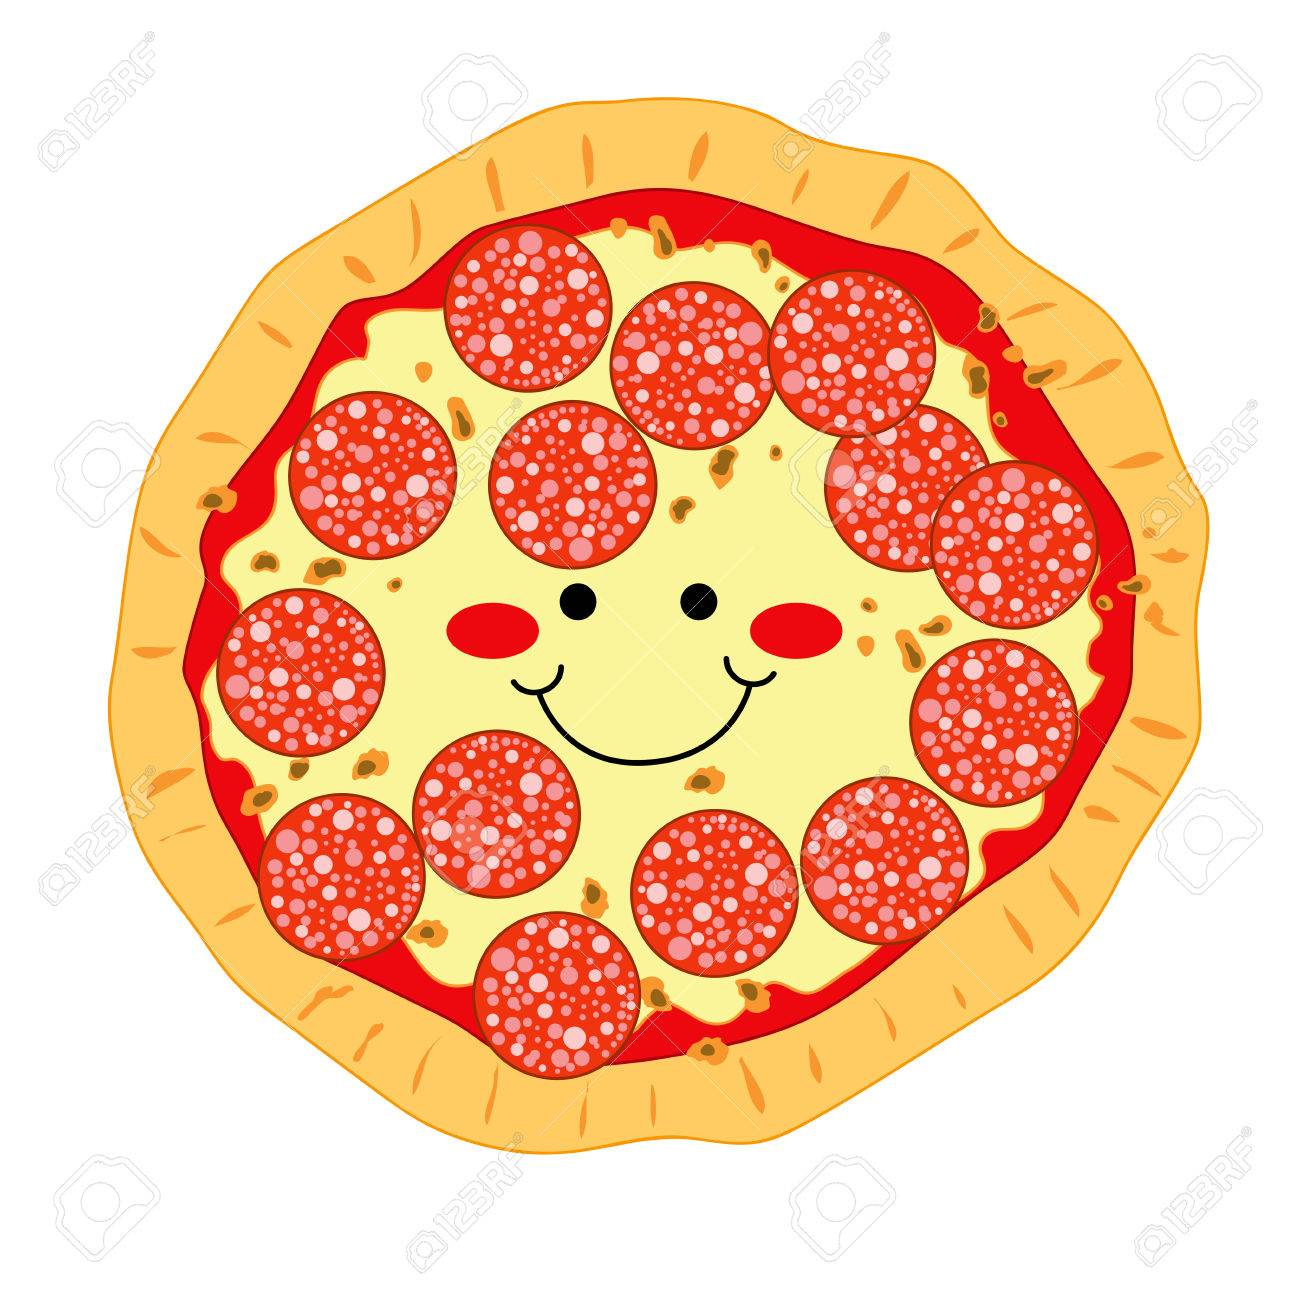 Cartoon Clipart: Smiling Slice Of Pepperoni Pizza With Halo And ...